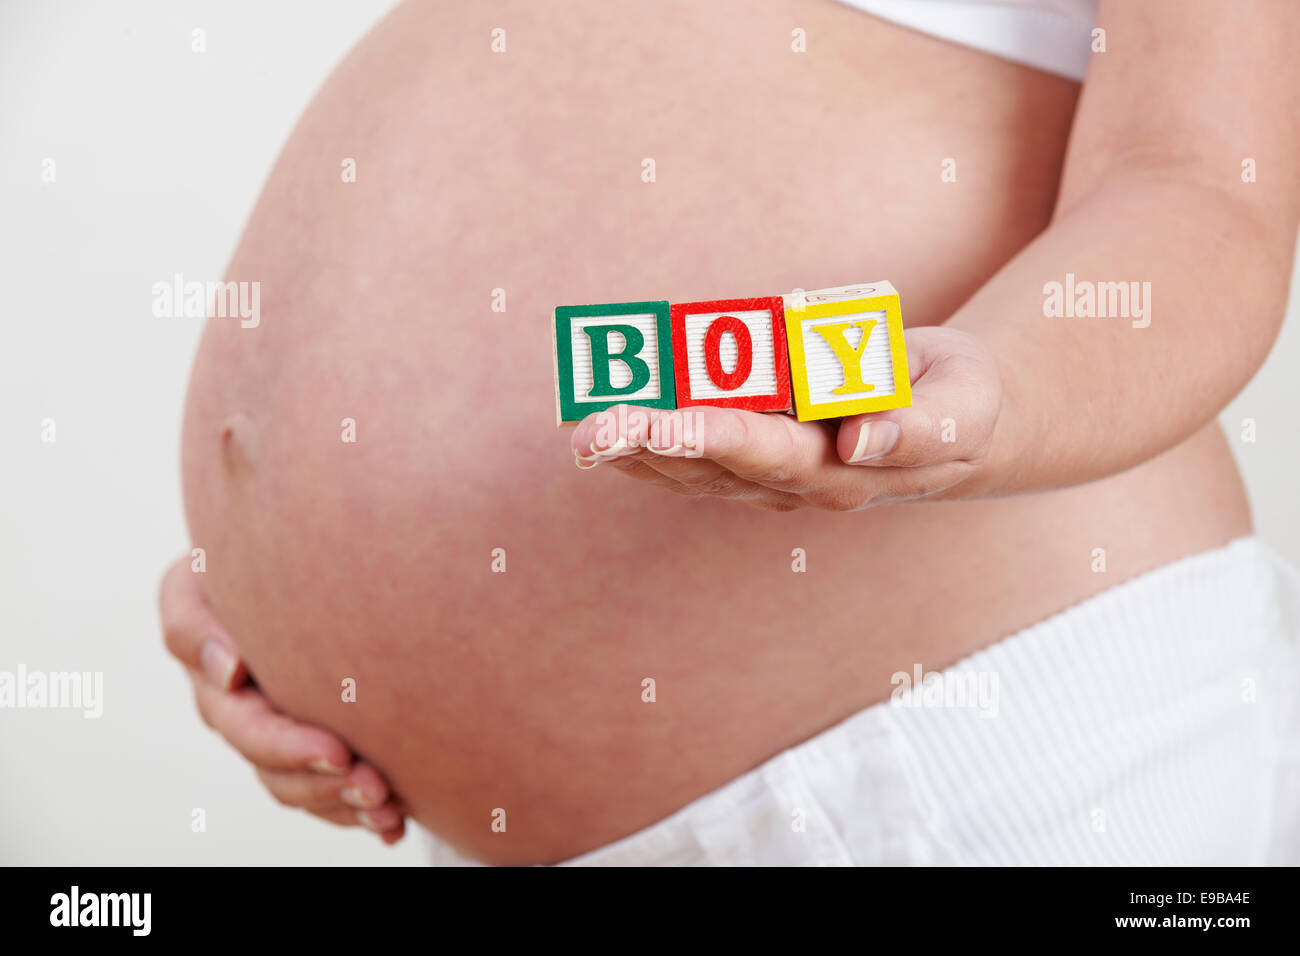 Pregnant Woman Holding Wooden Blocks Spelling Boy - Stock Image